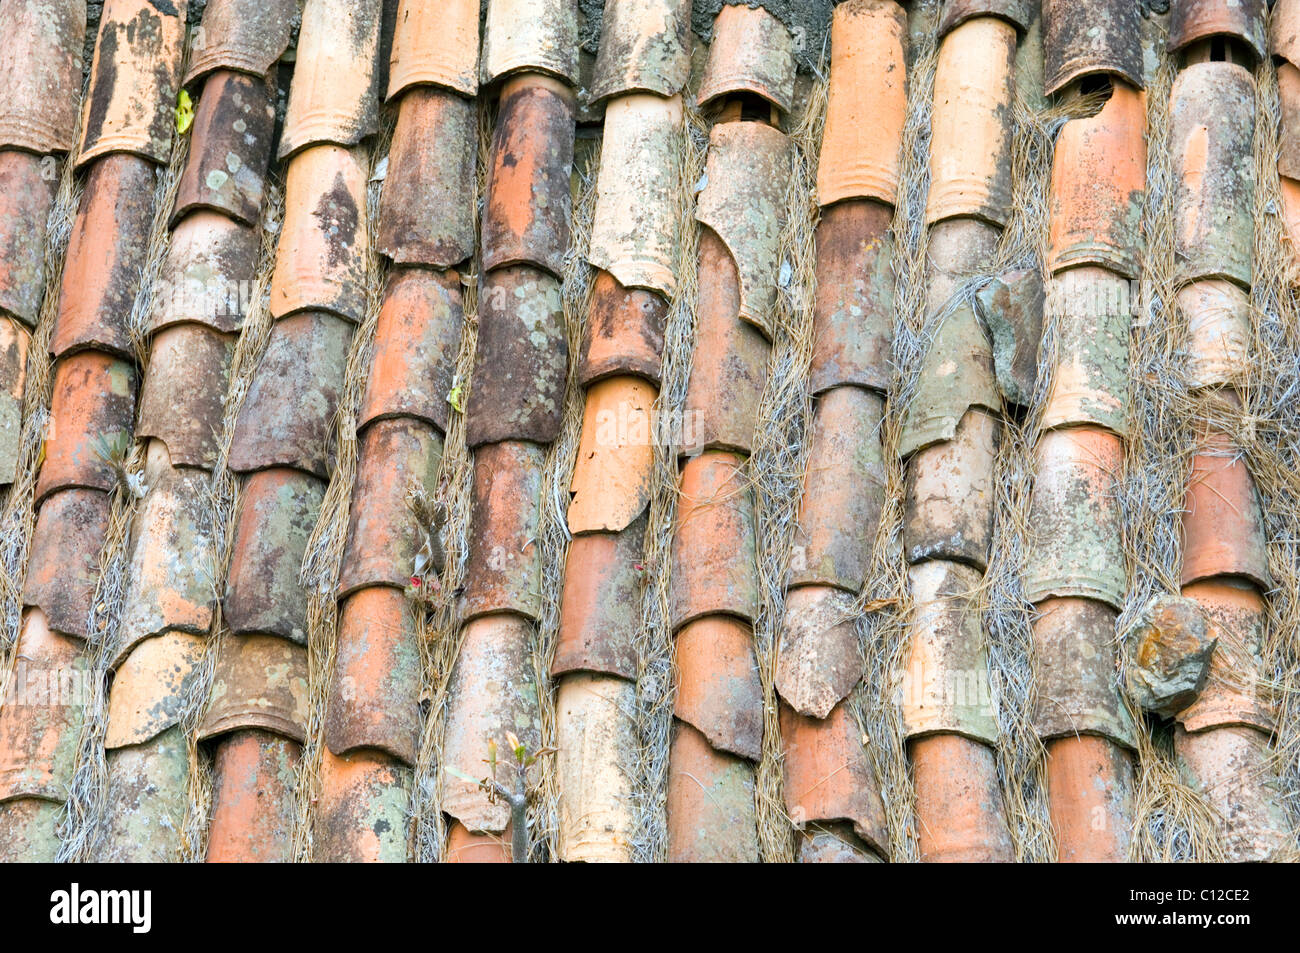 Old ceramic pottery terracotta roof tiles on rural house on la old ceramic pottery terracotta roof tiles on rural house on la gomera canary islands spain dailygadgetfo Choice Image